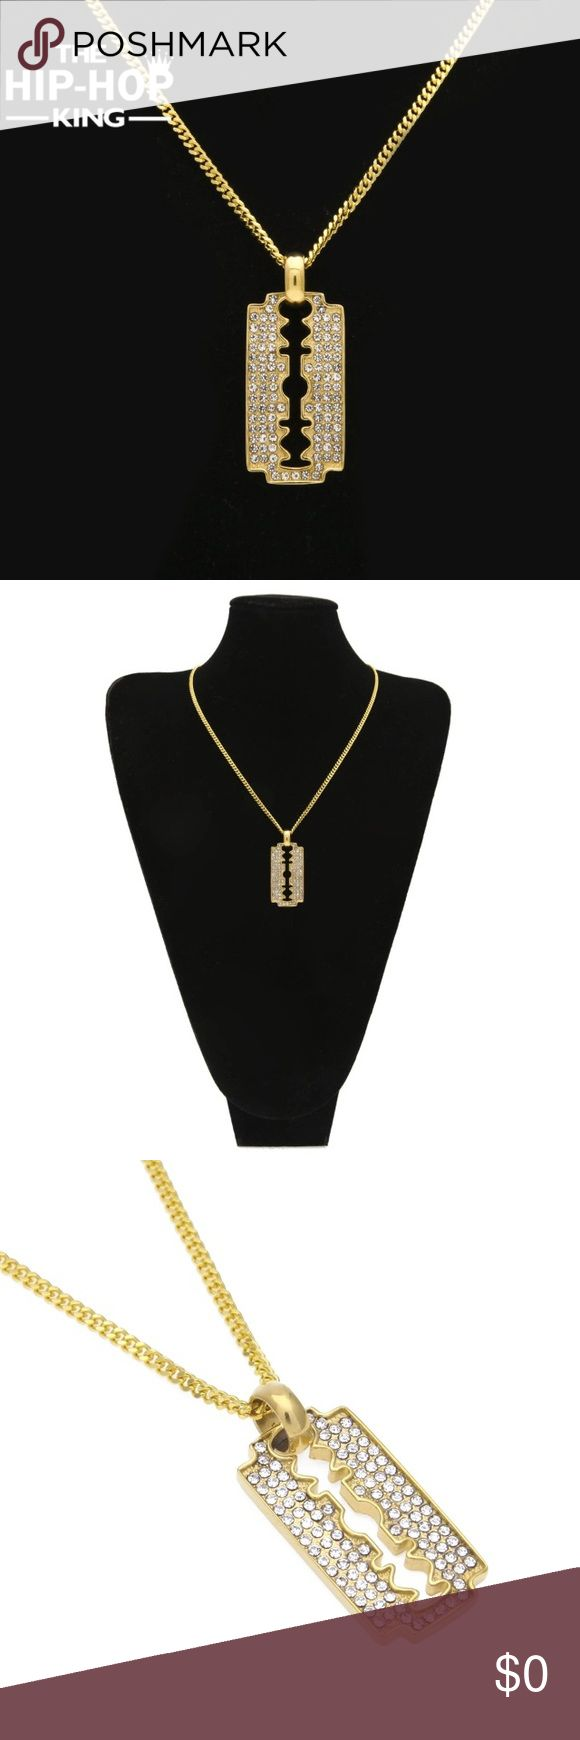 Razor Blade $35 THE HIP HOP KING Razor Blade Necklace.Gold Color Mens Iced Out Rhinestone Pendant Necklace Accessories Jewelry